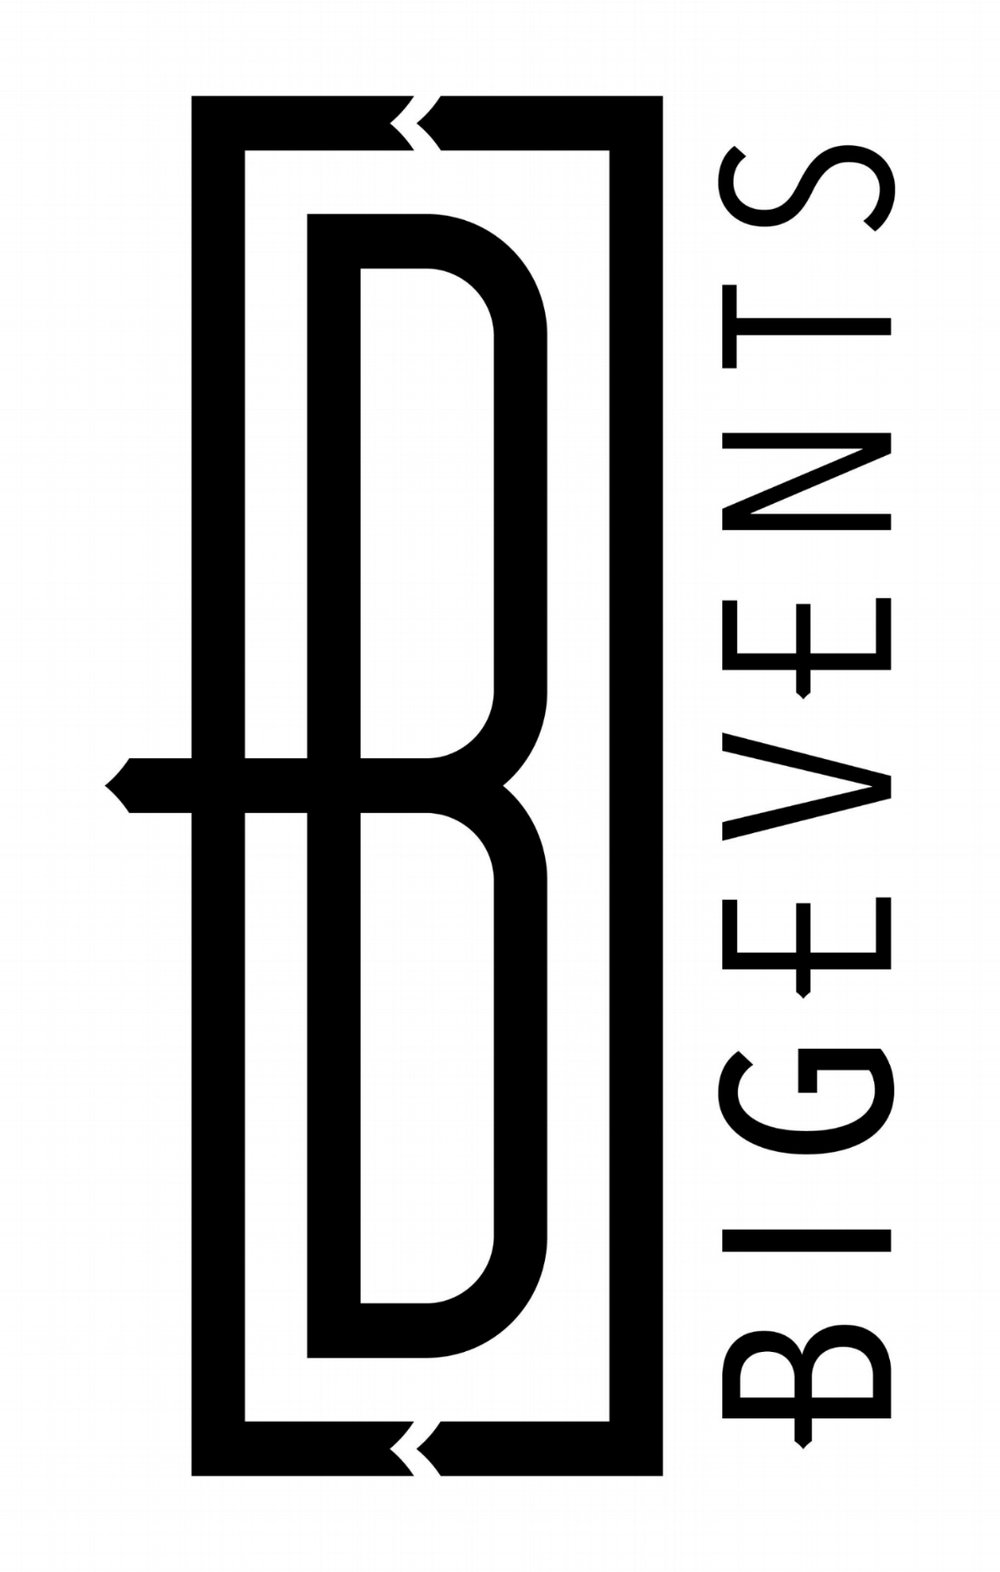 Big Events Wedding logo - expert wedding planning services in Nashville, TN.